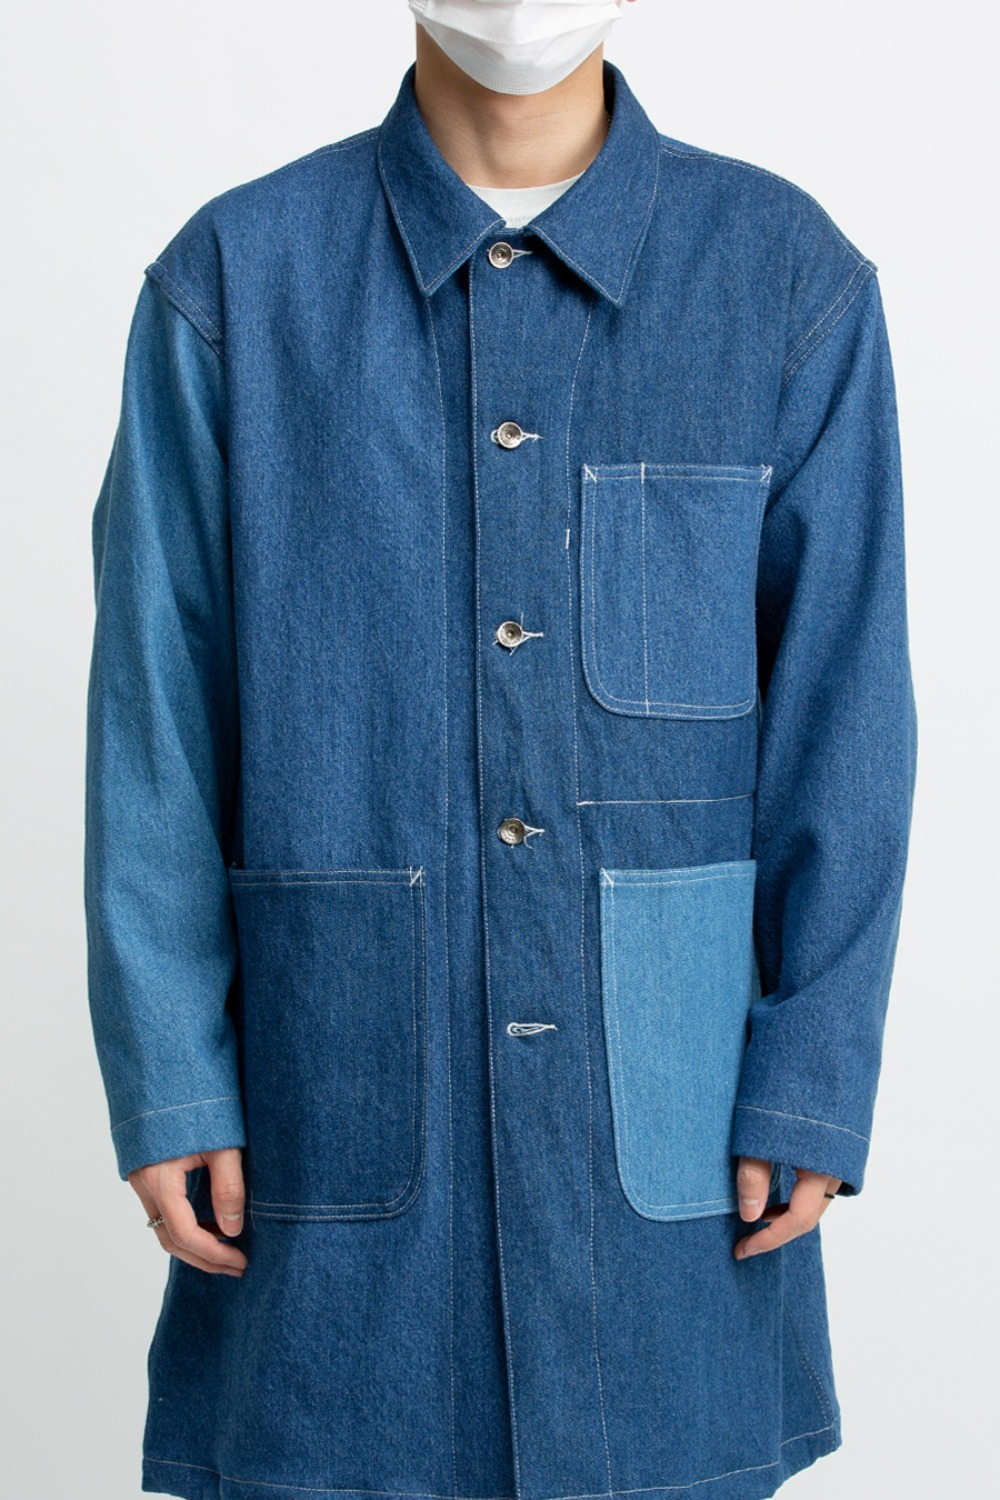 SHOP COAT COMBO INDIGO LIGHT WASH 12oz DENIM